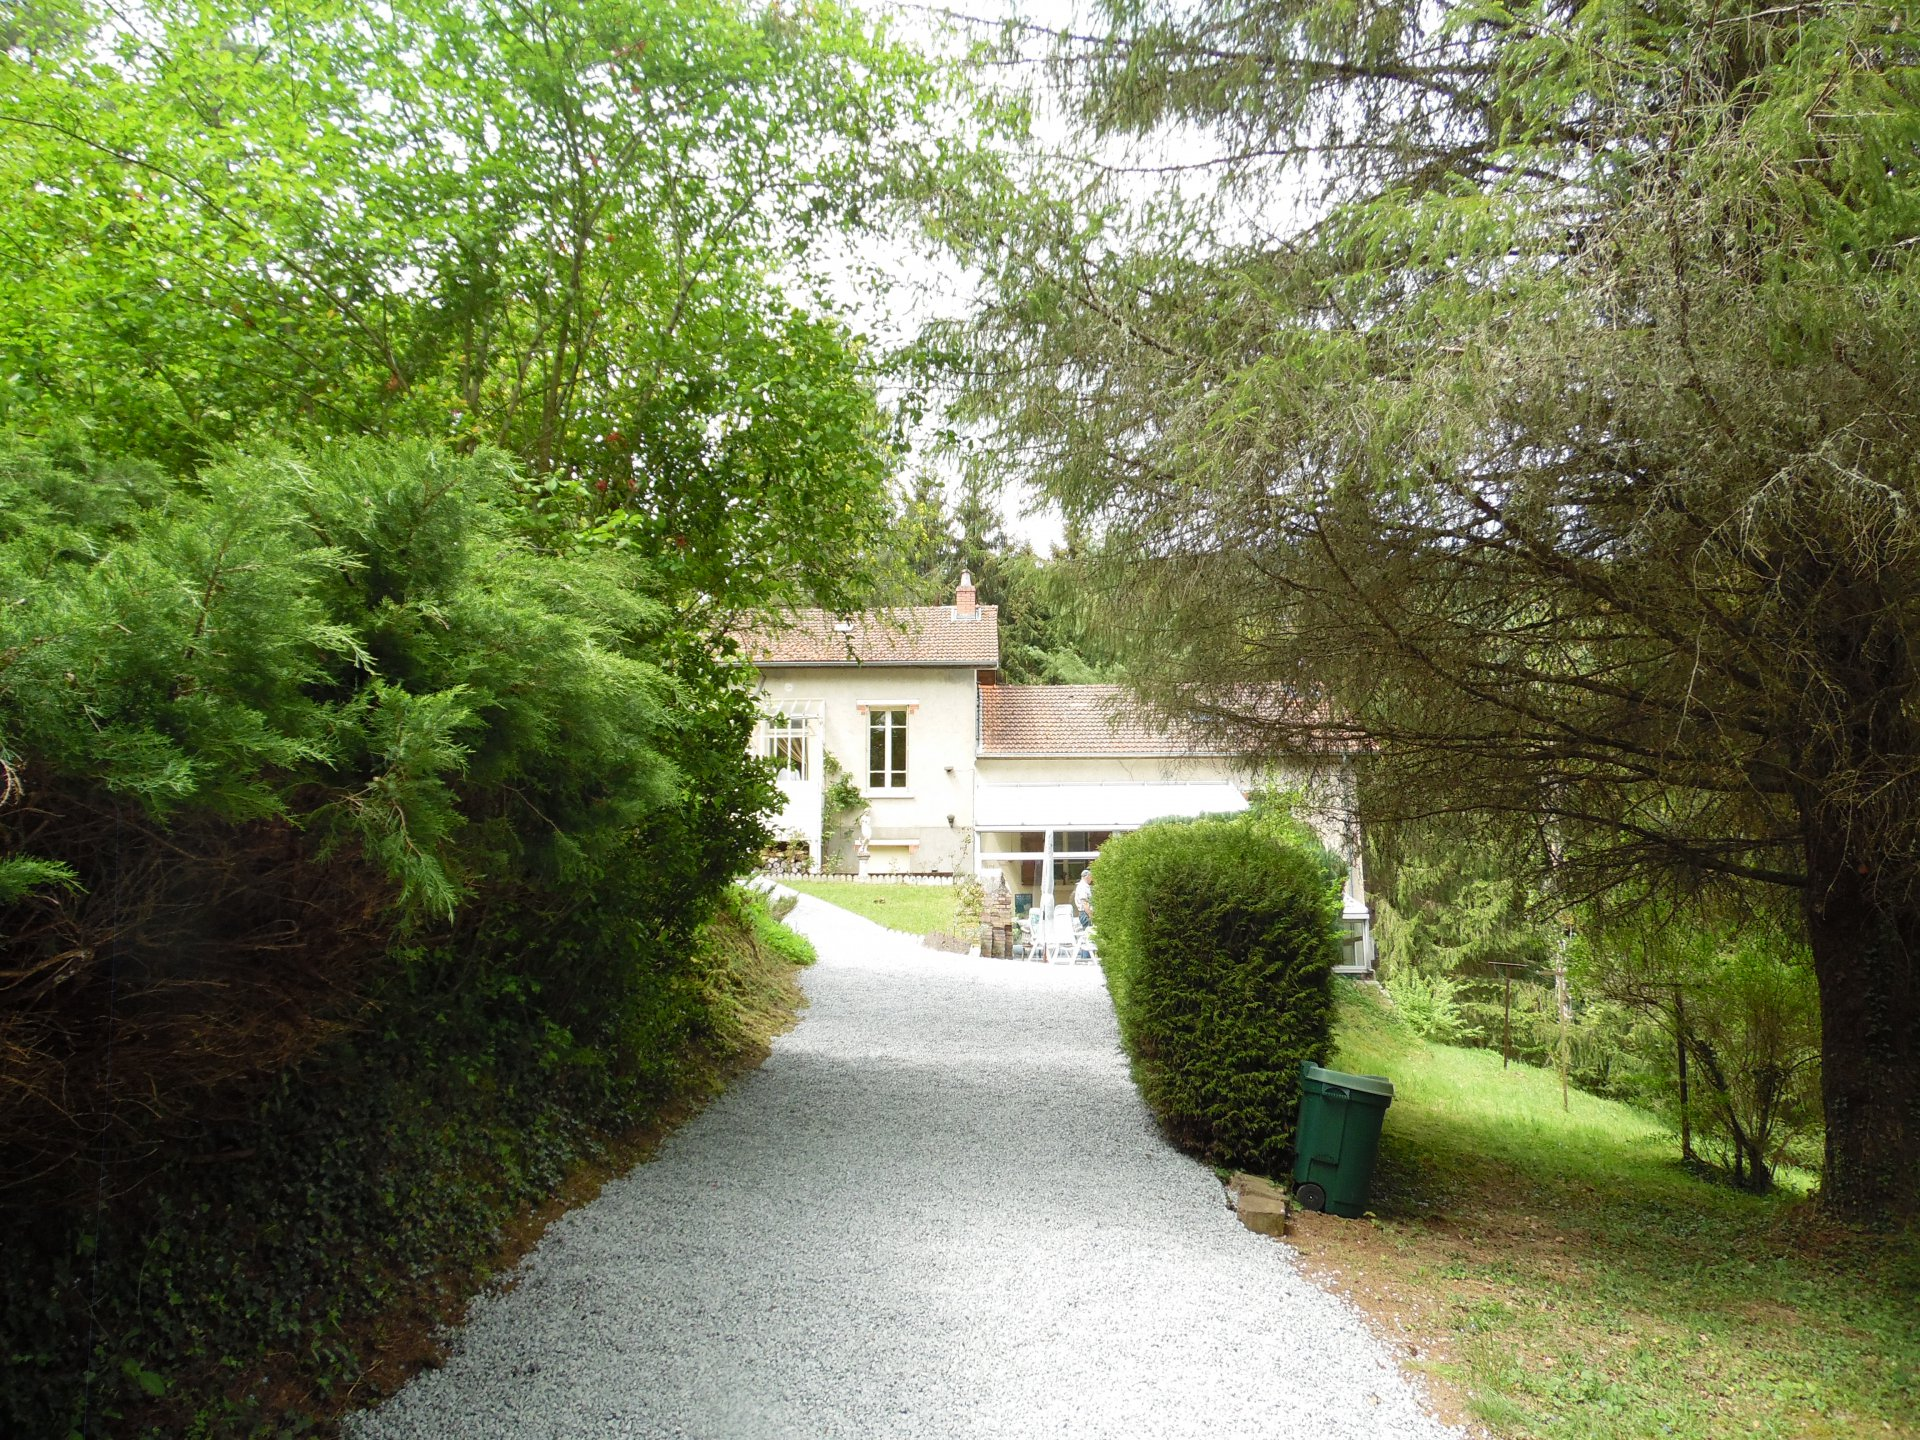 For sale whole of 2 houses by a river with beautiful terrain.